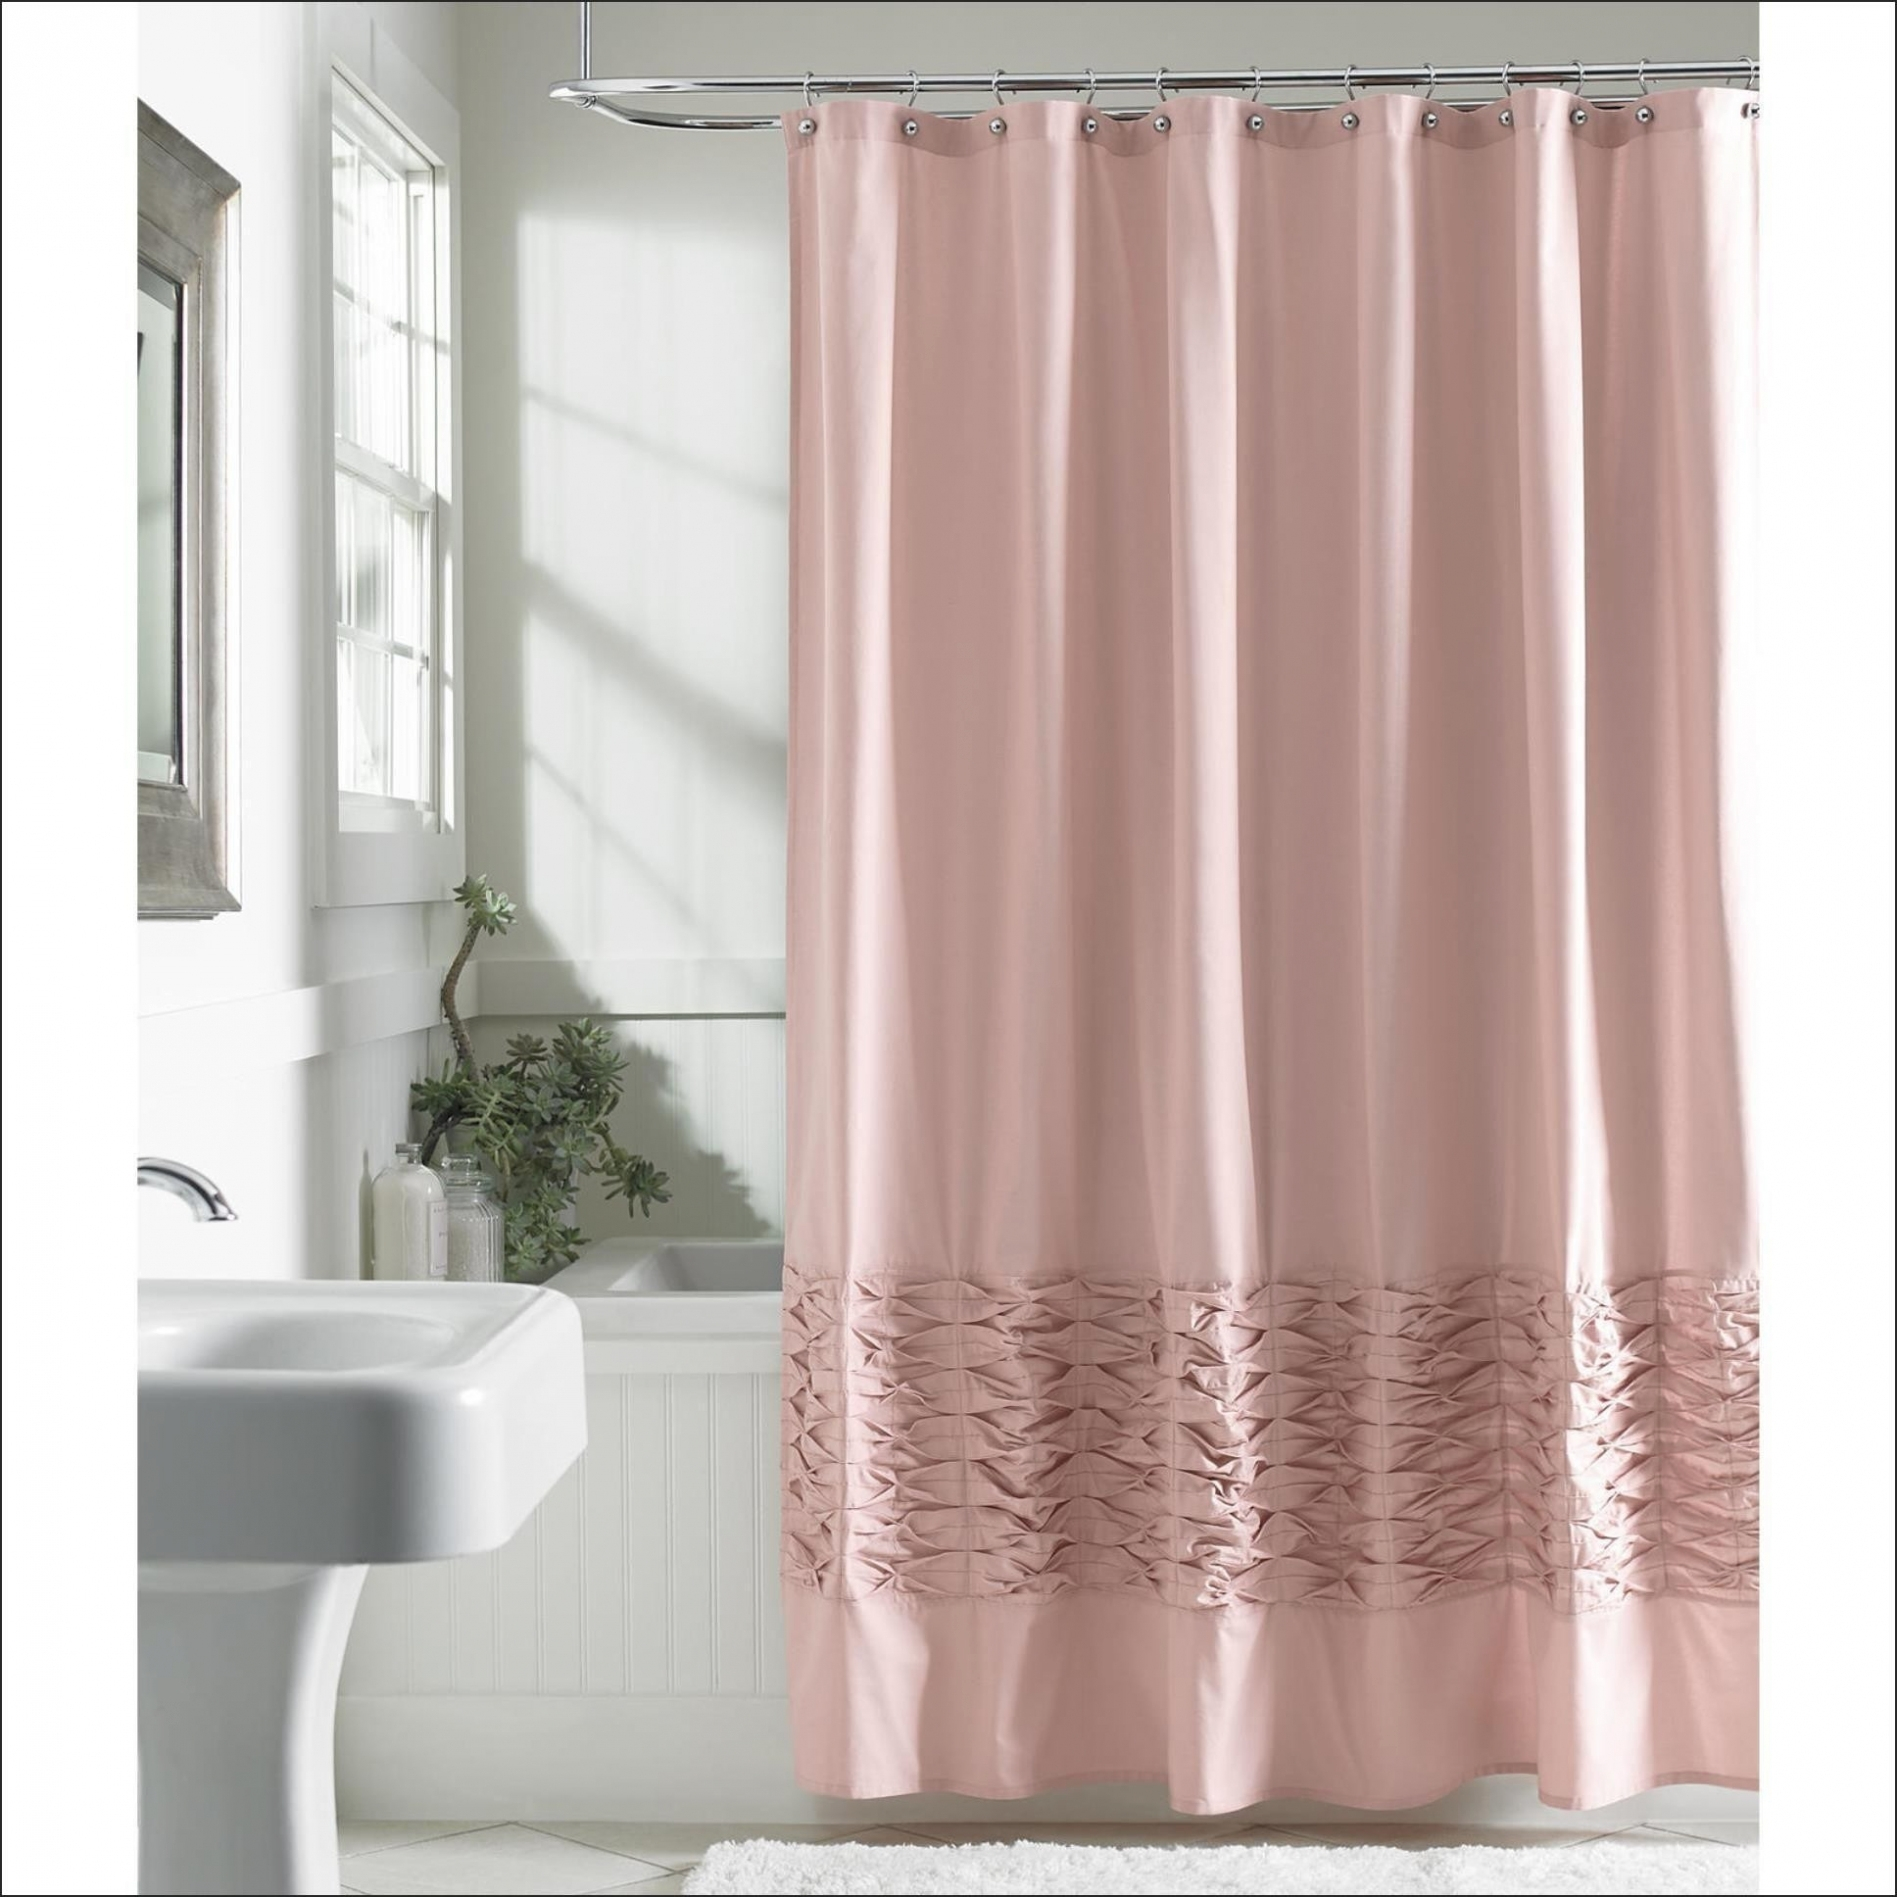 Bendable Curtain Rod And Home Depot Randolph Indoor And Outdoor Design